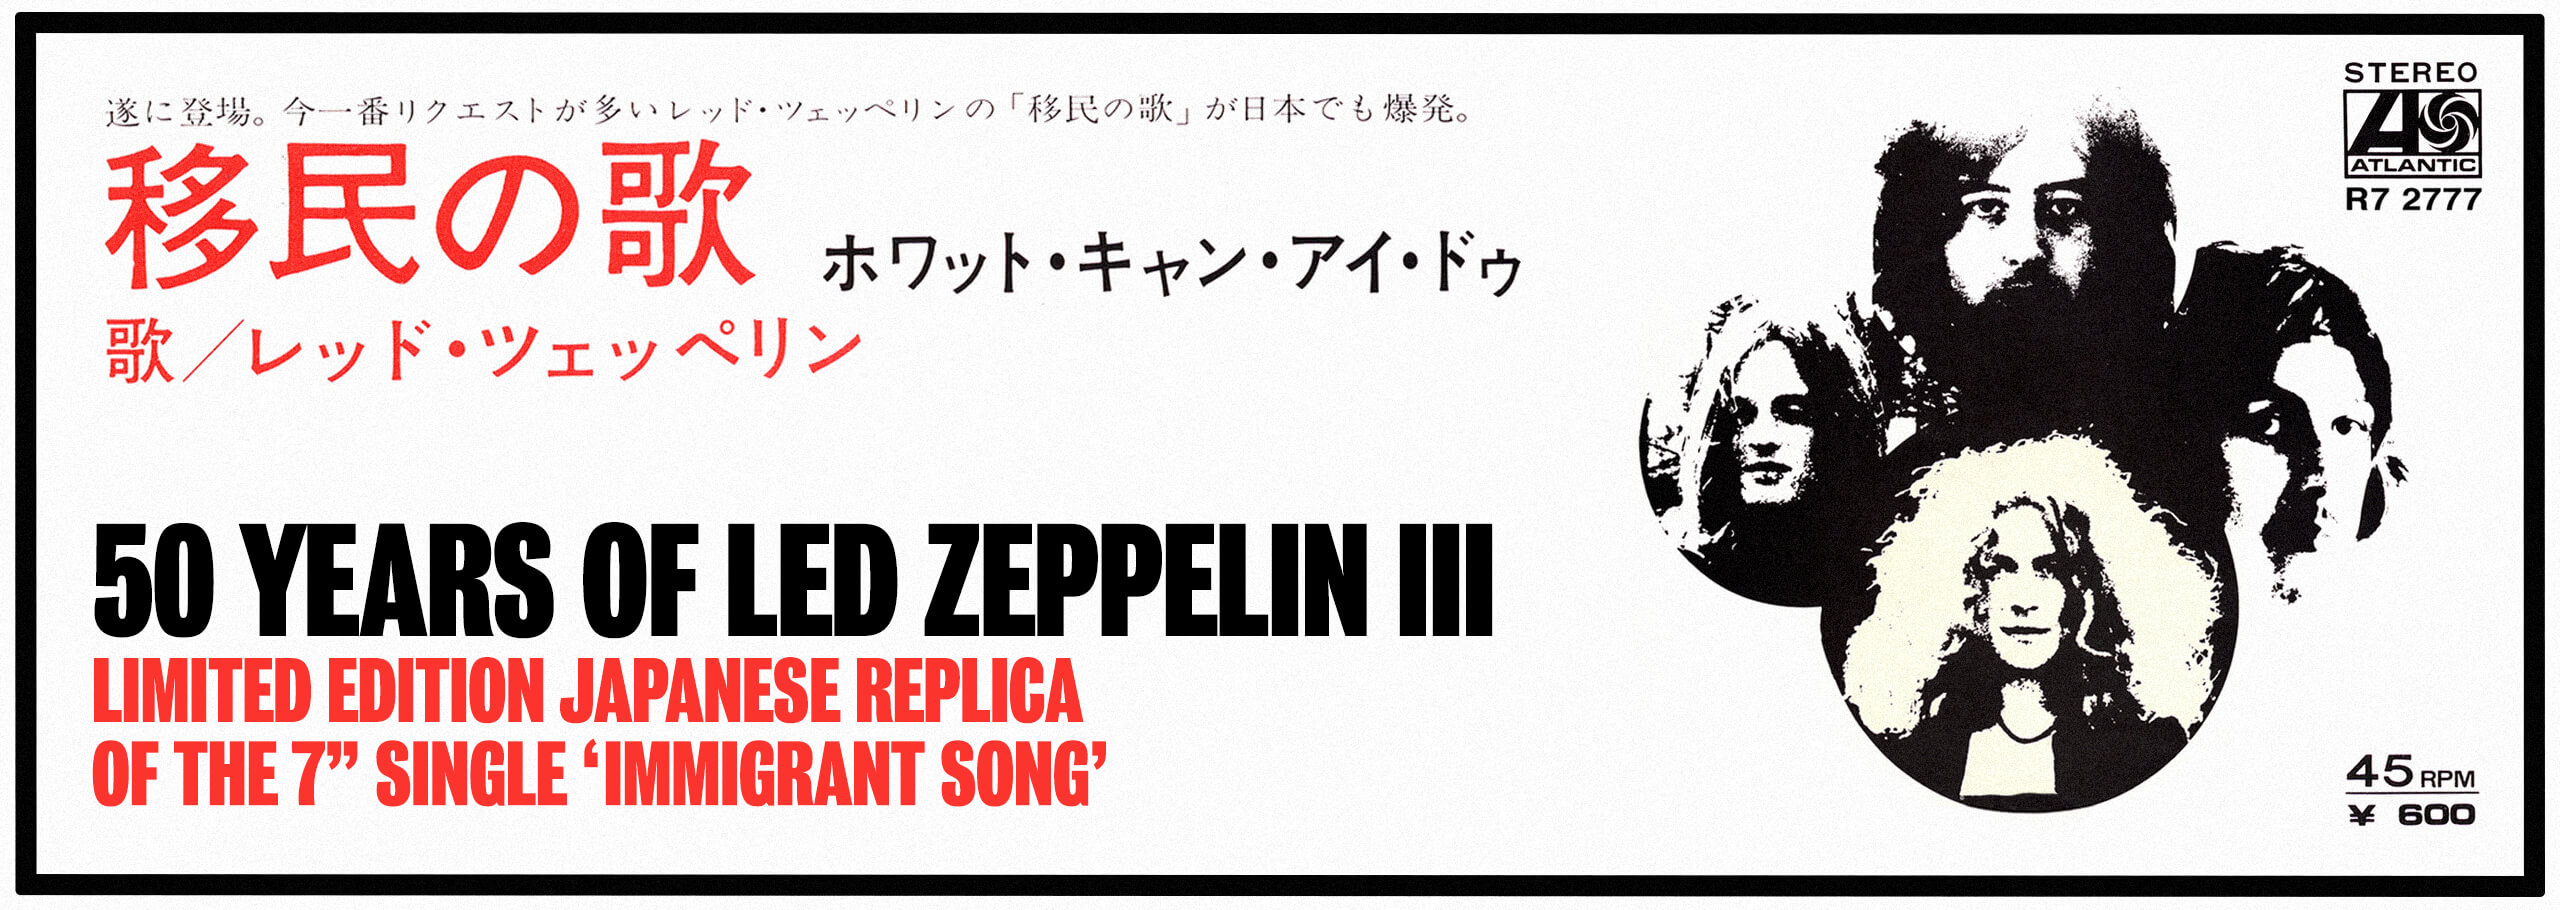 50 years of Led Zepplin Japanese edition of 'immigrant song'